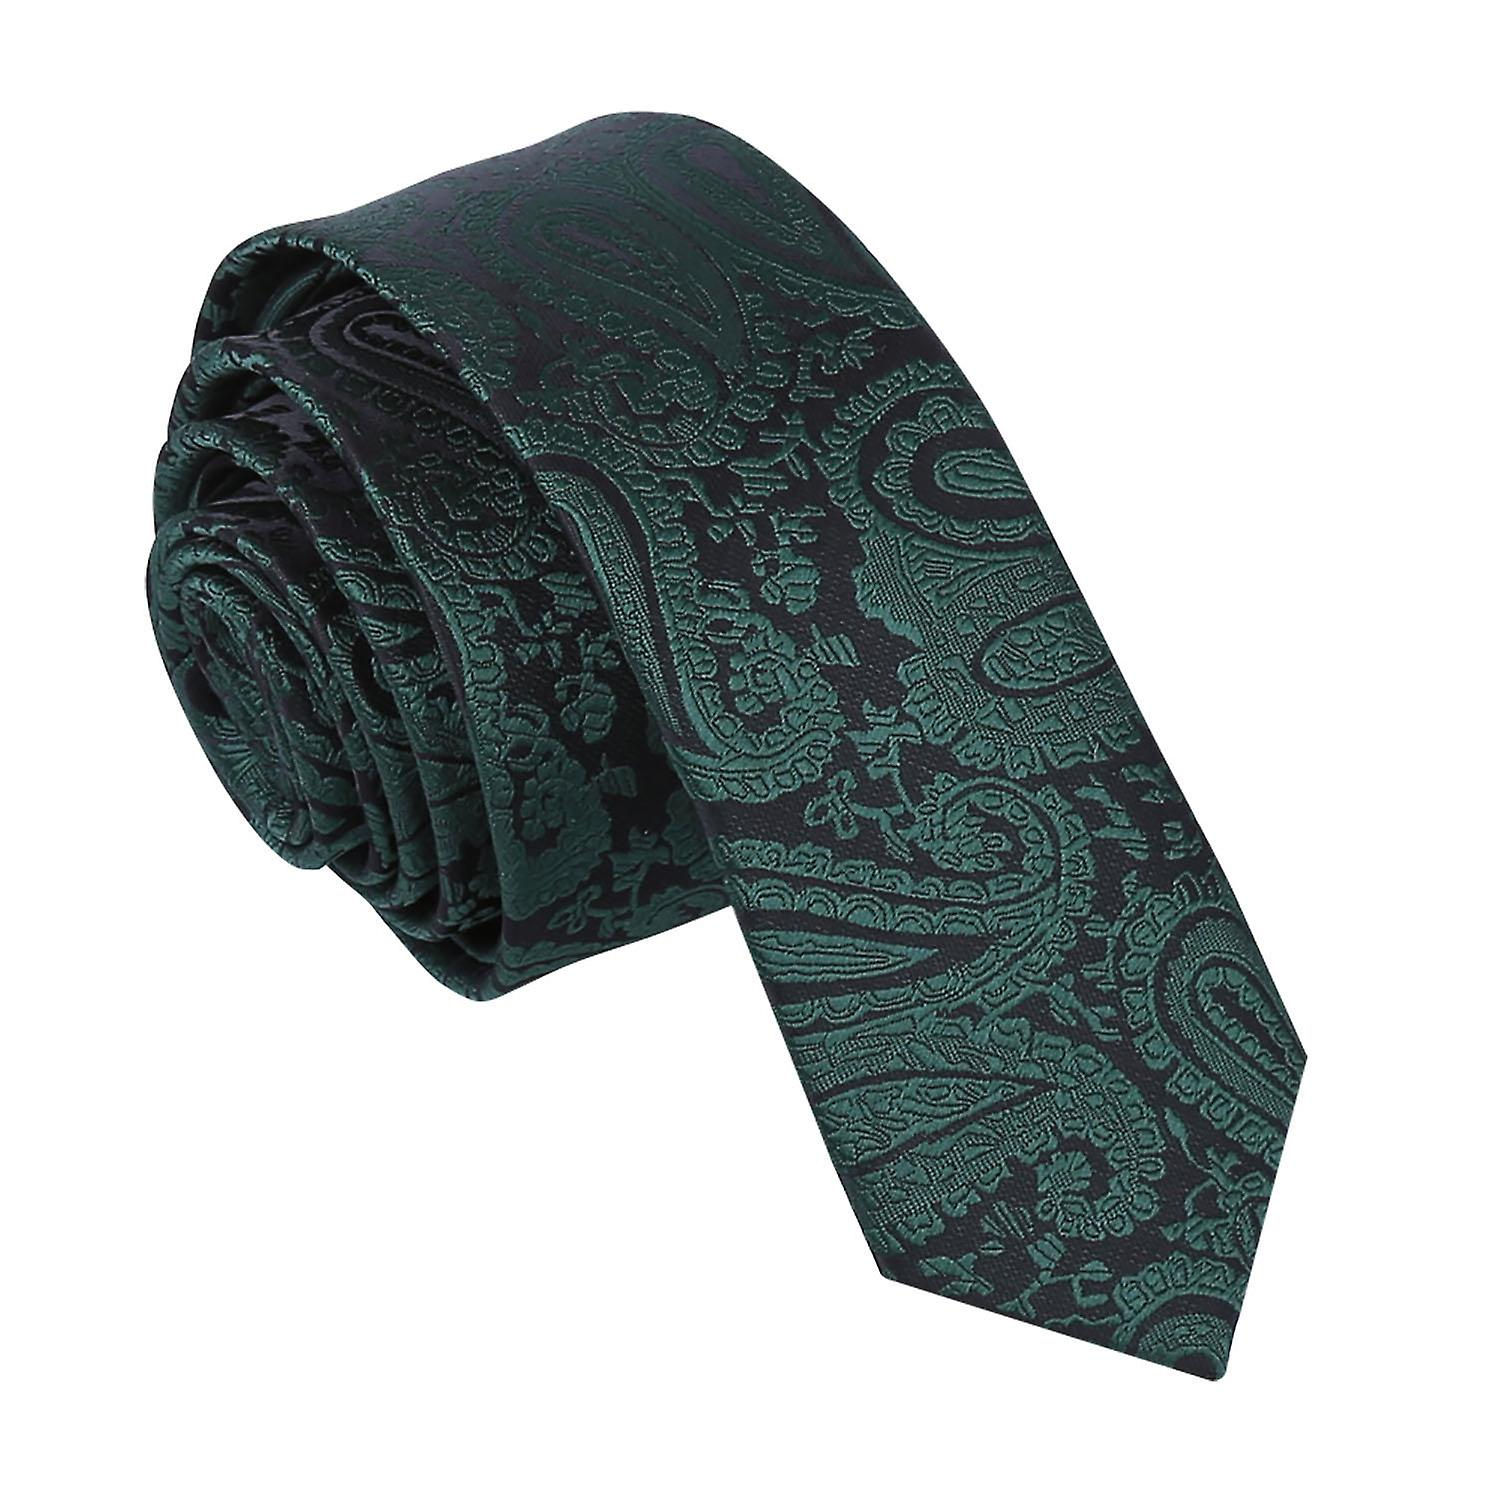 Emerald Green Paisley Patterned Skinny Tie